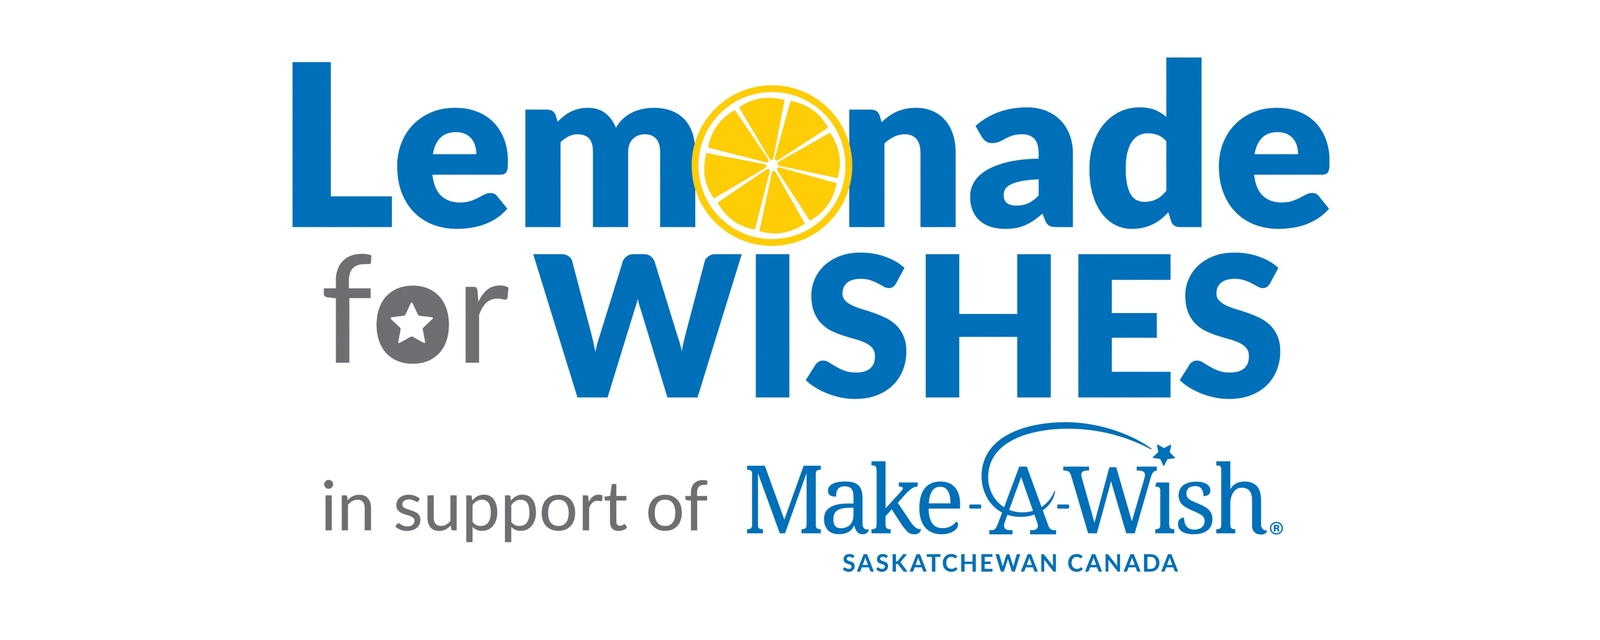 Lemonade for Wishes